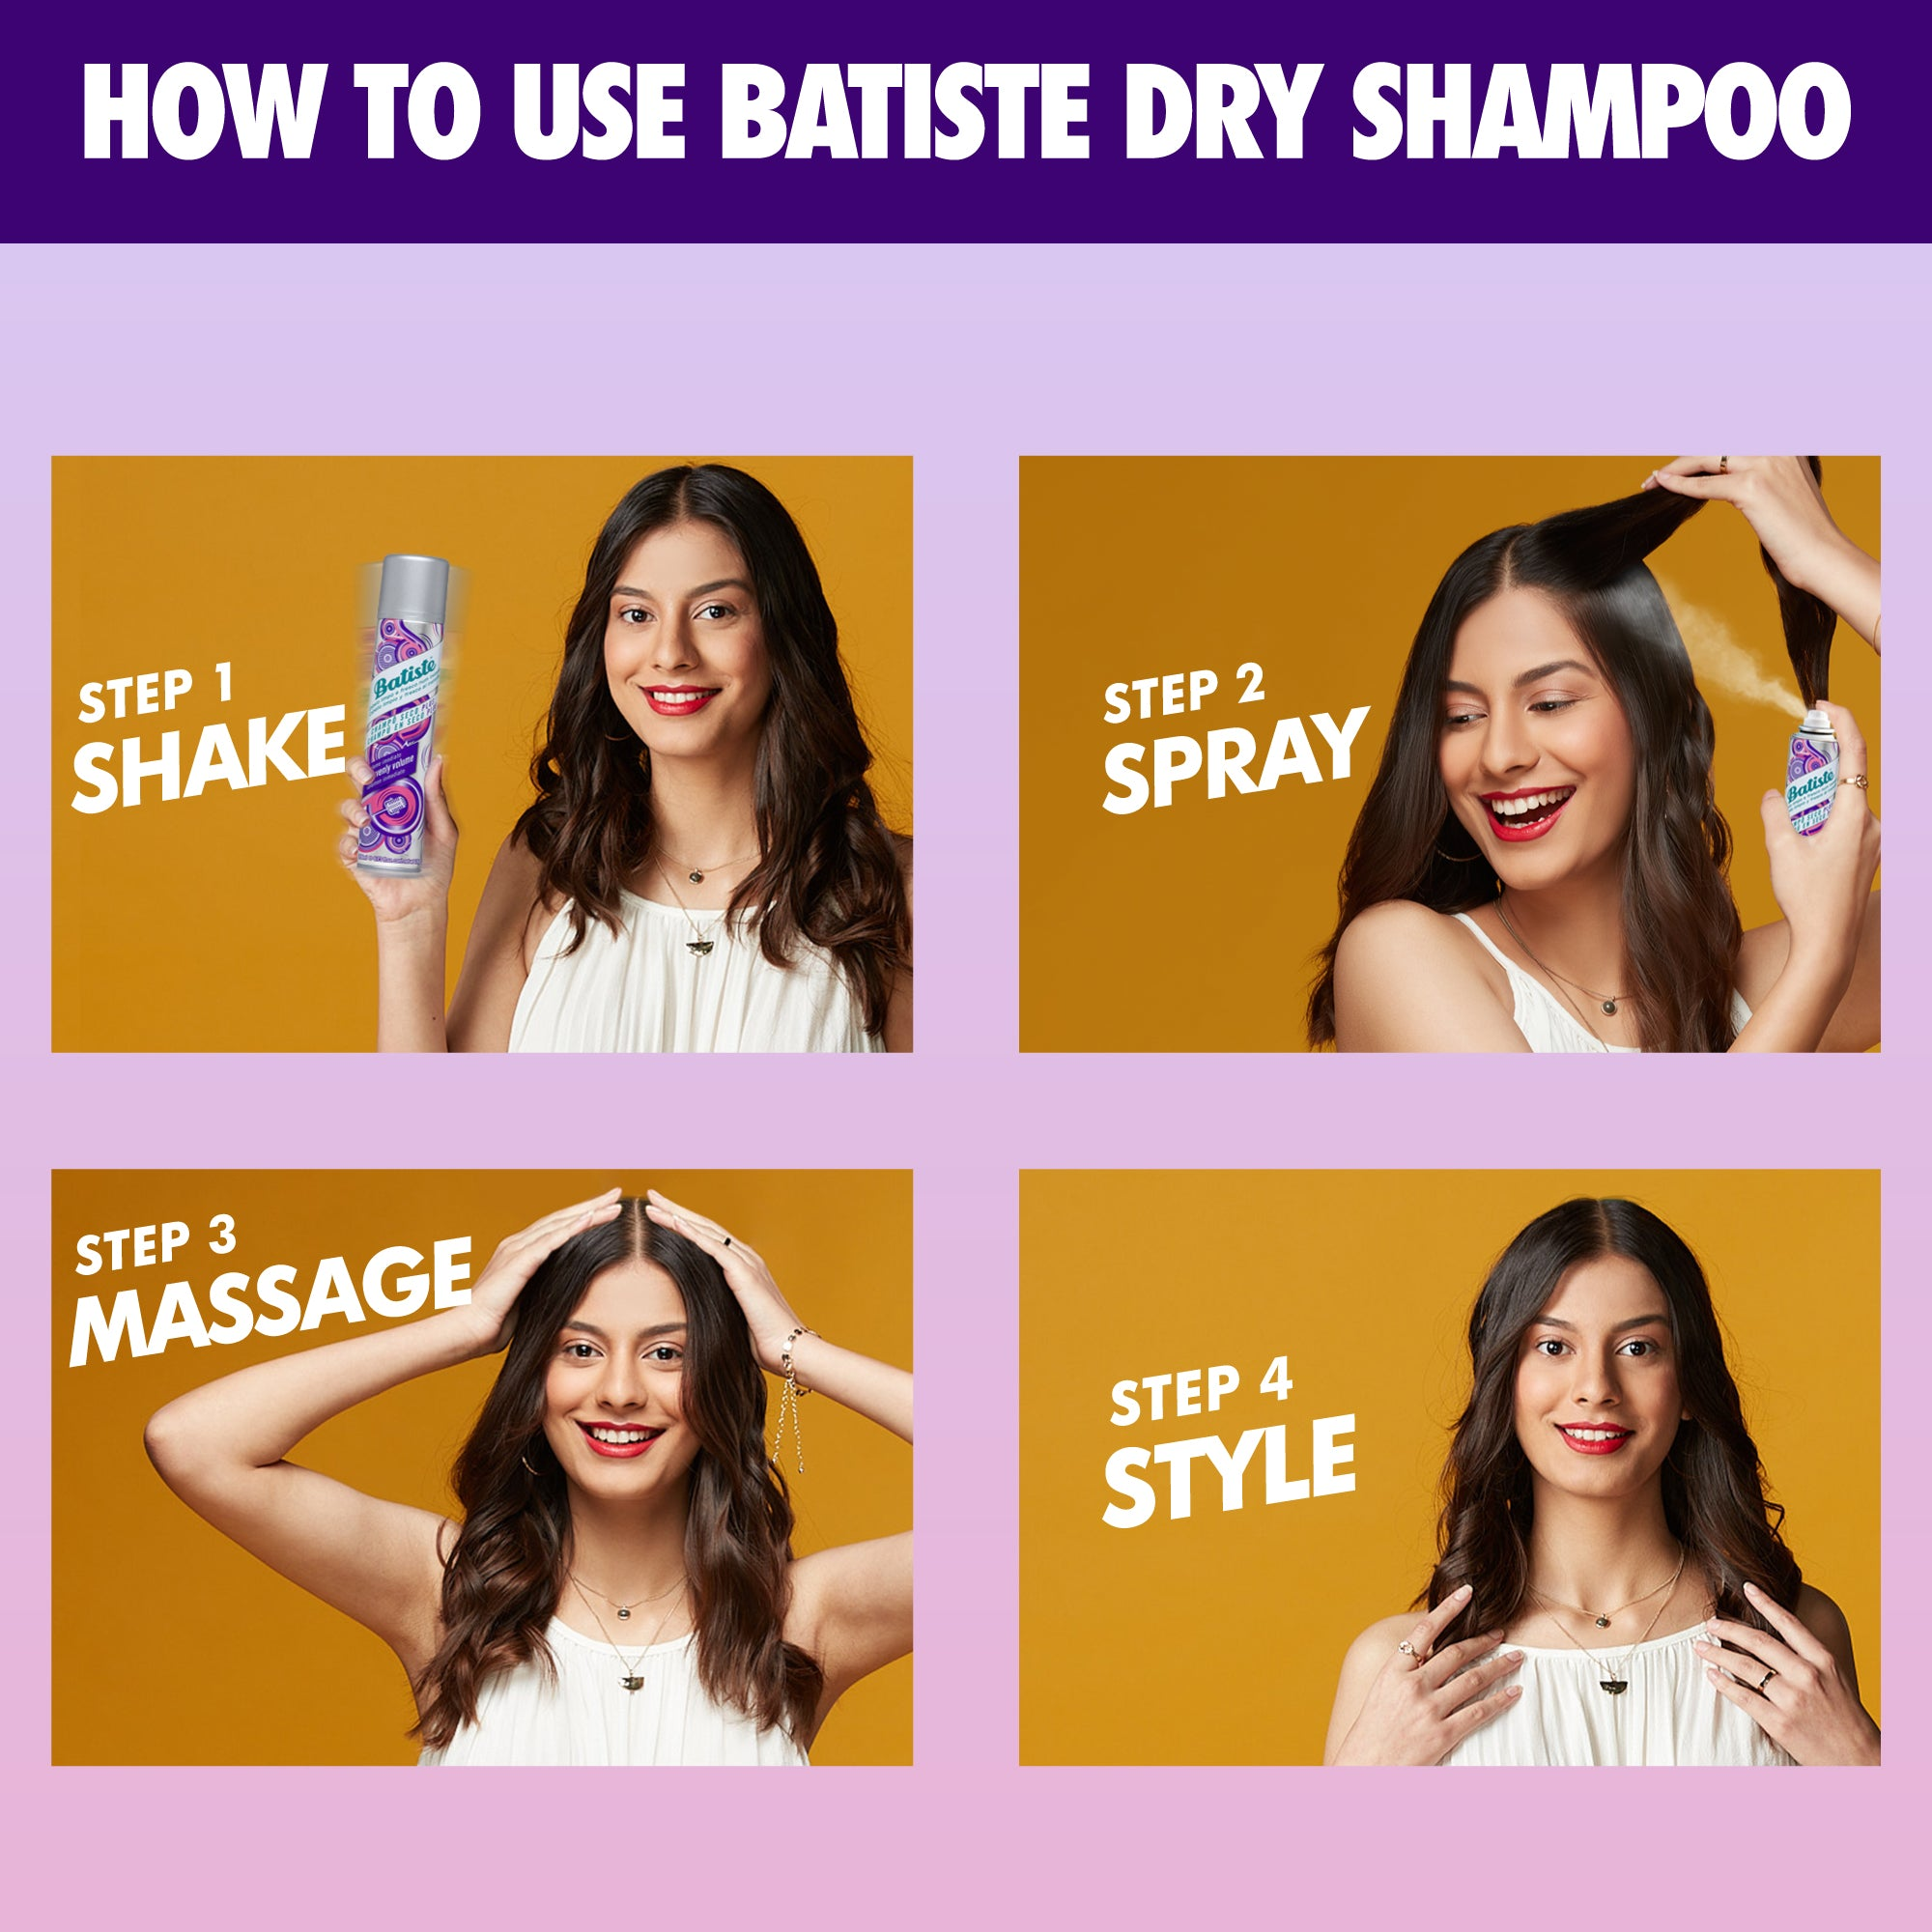 Batiste Dry Shampoo Heavenly volume